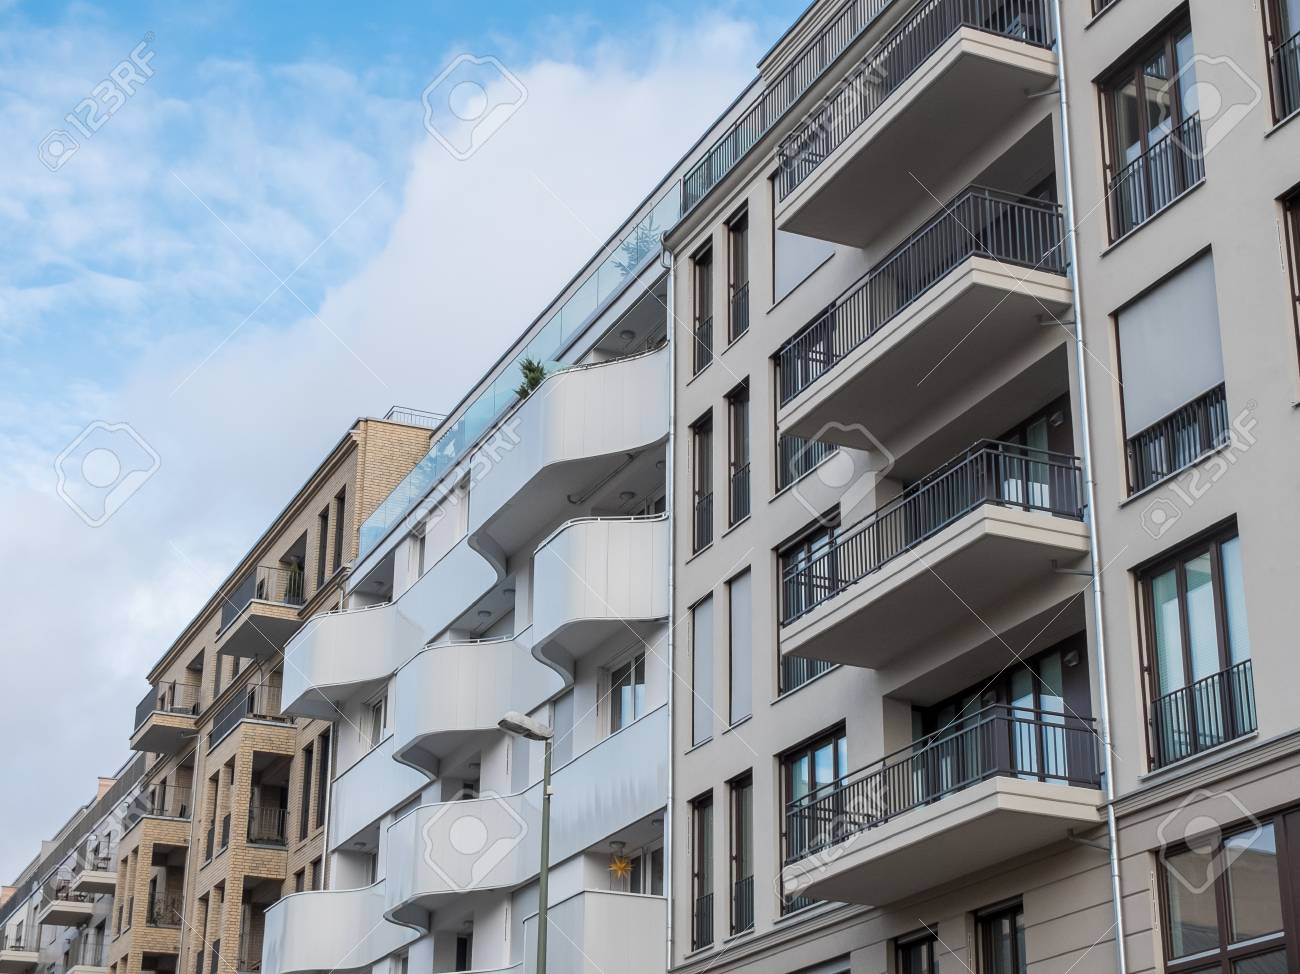 Low Angle View Of Modern Low Rise Apartment Building Facades With Balconies  In Residential Neighborhood With